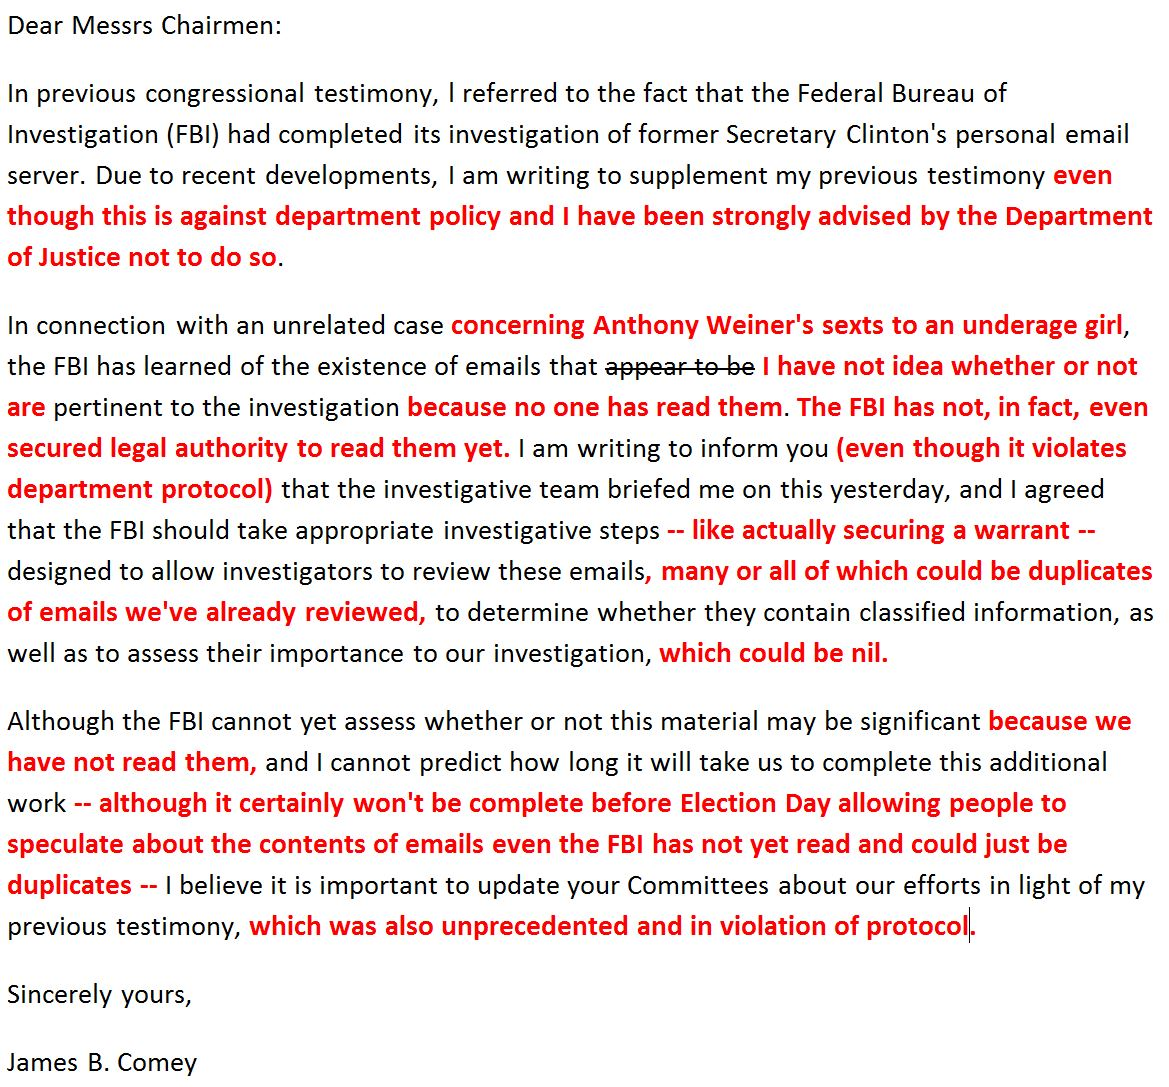 I fixed Comey's letter